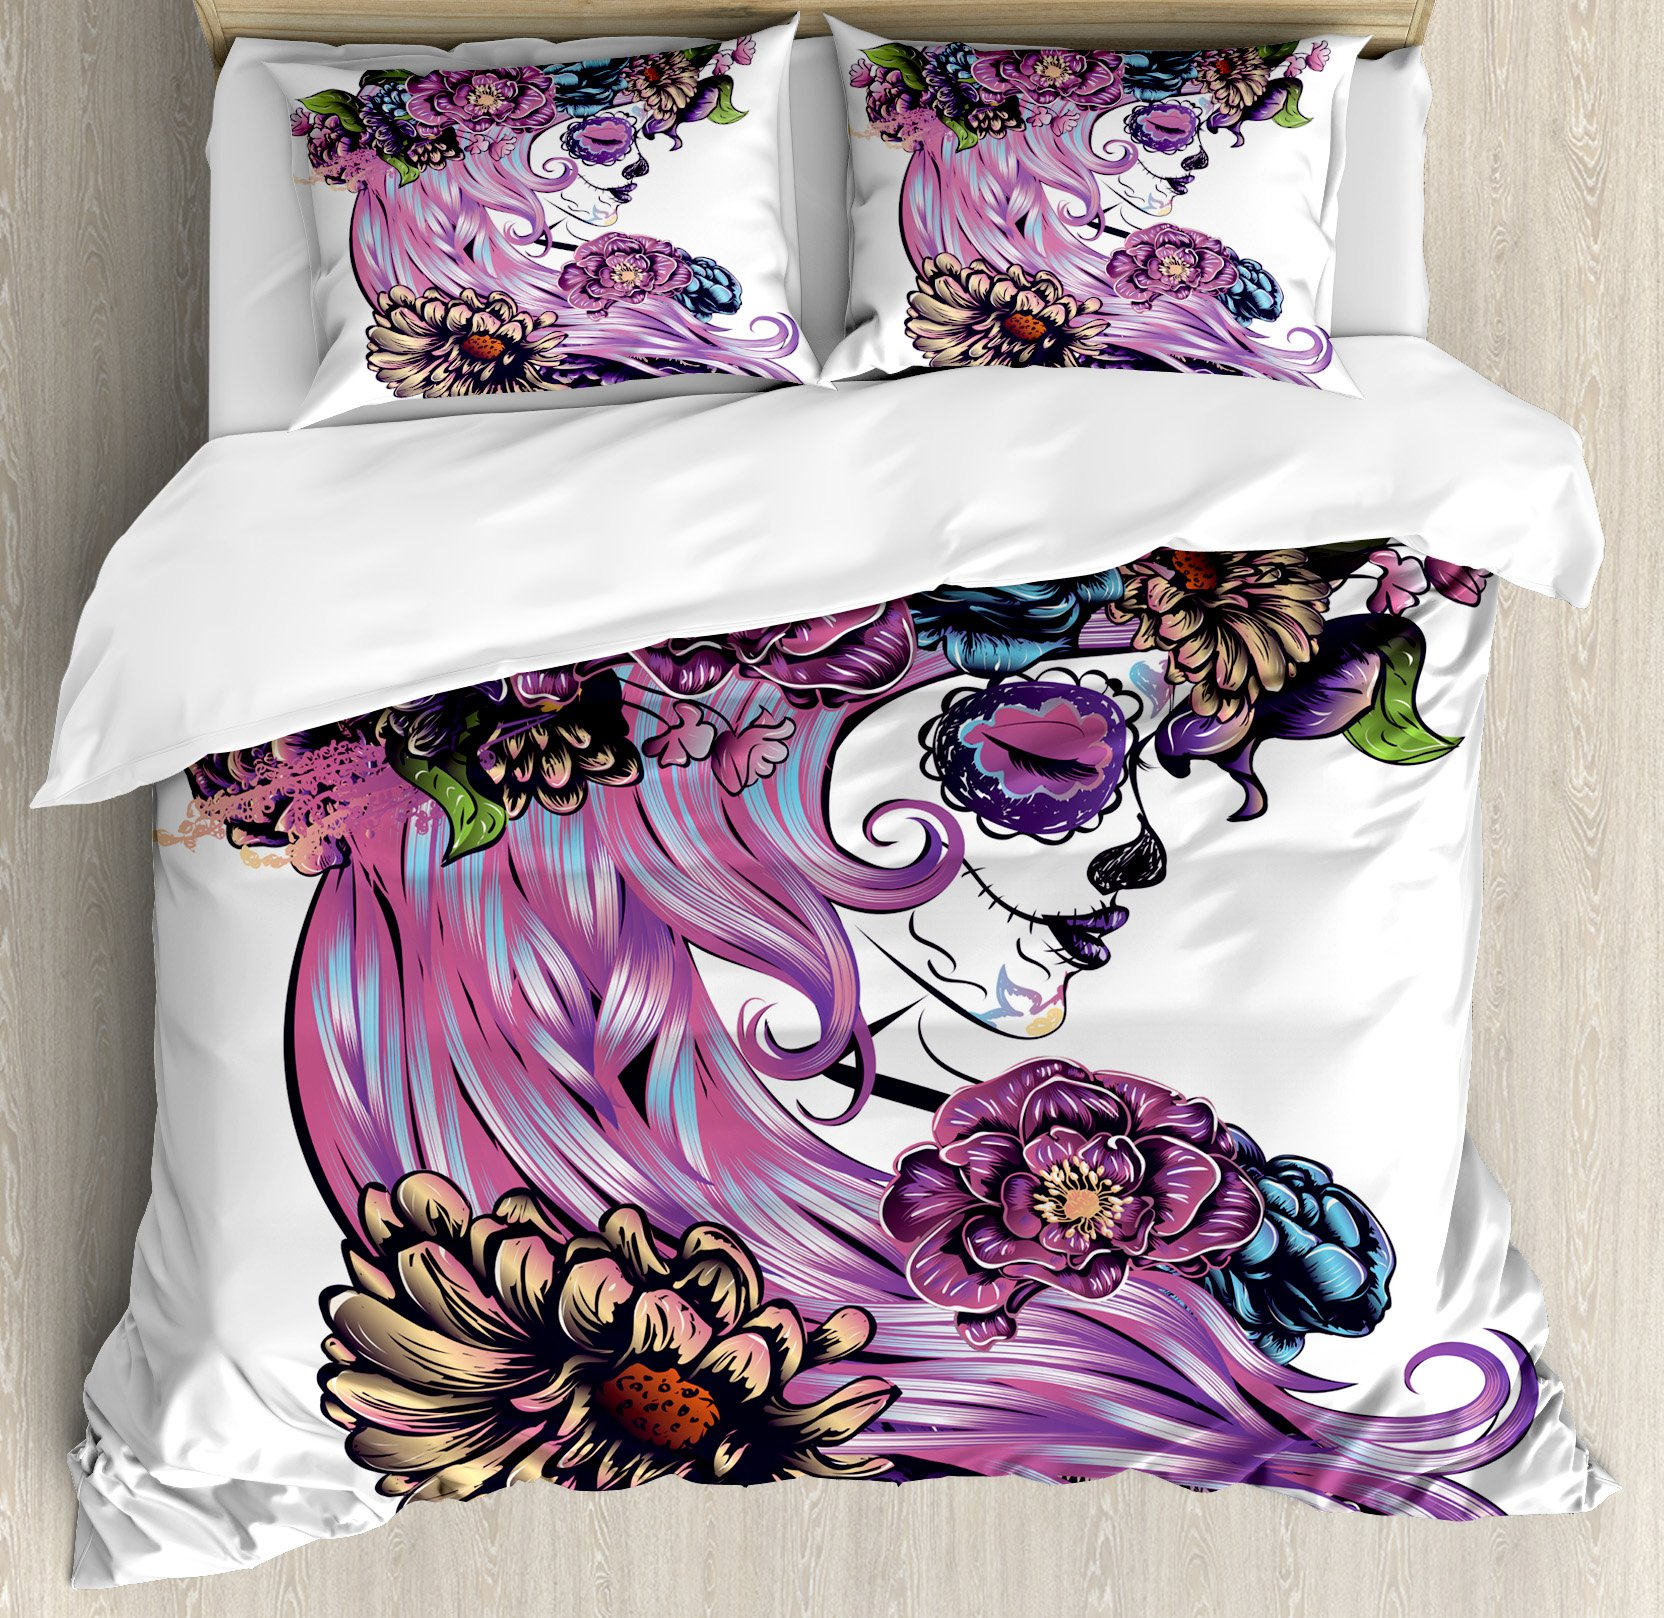 Gothic Decor Queen Size Duvet Cover Set by Ambesonne, Day of the Dead Illustration with Sugar Skull Girl in Decorative Flower Wreath, Decorative 3 Piece Bedding Set with 2 Pillow Shams